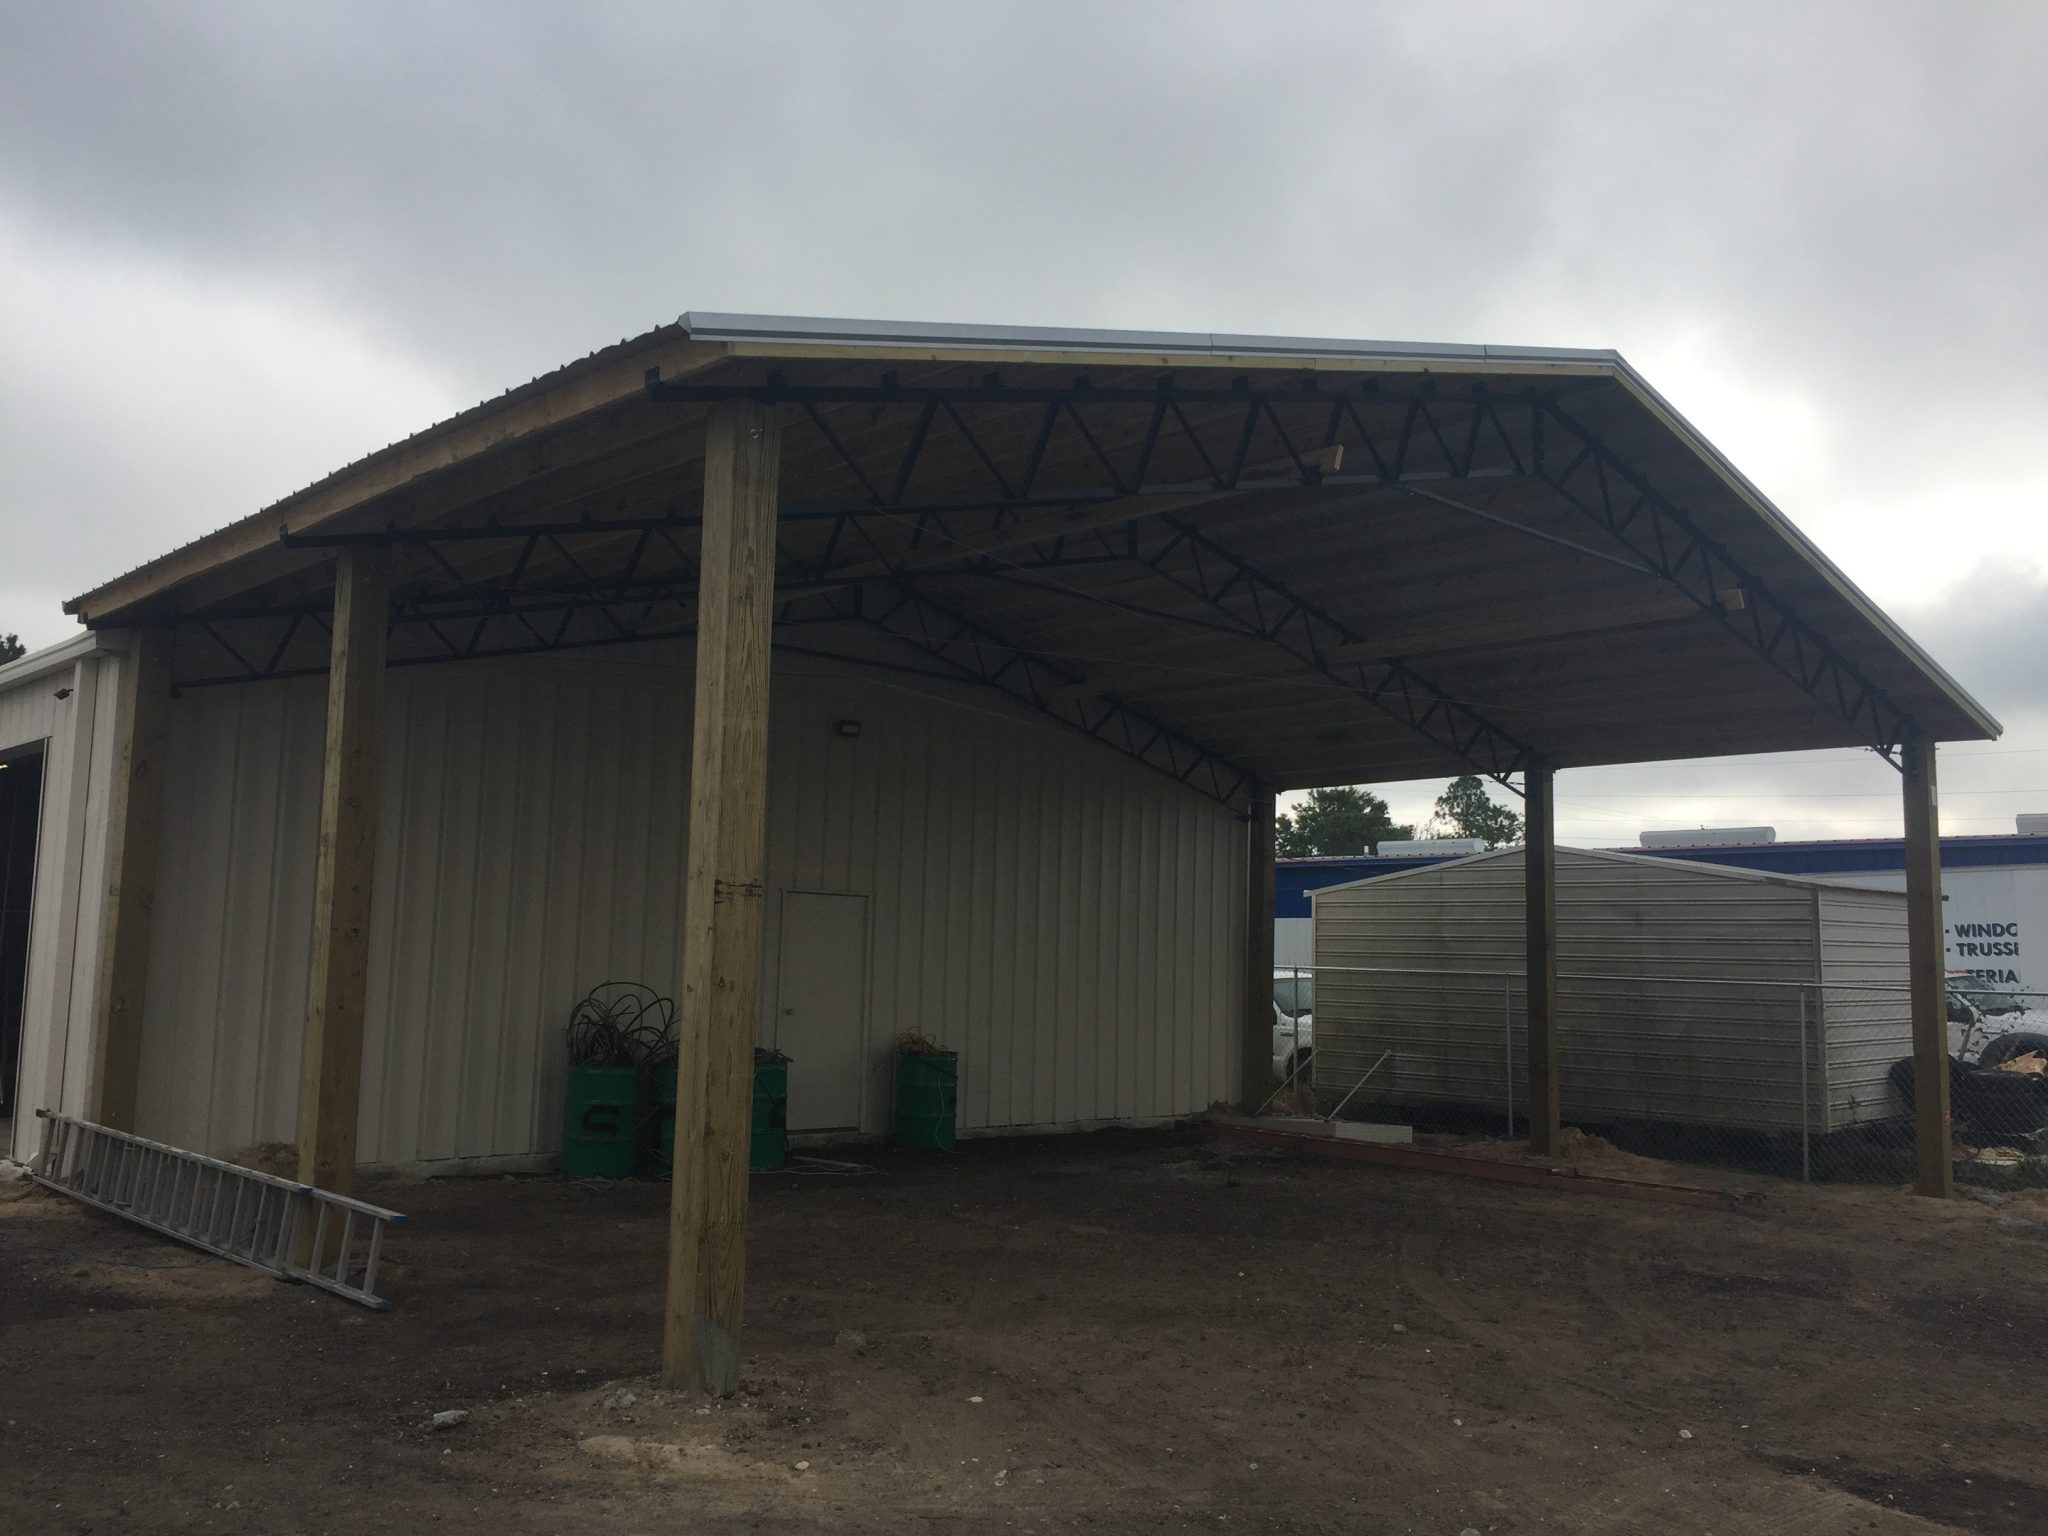 homemade building for truss maine best carport alabama this metal ing trusses system youtube decor kits used sheds wood barn need manufacturers fl home steel drawing pole menards craigslist prices barns gainesville kit strouds roof pipe v x with